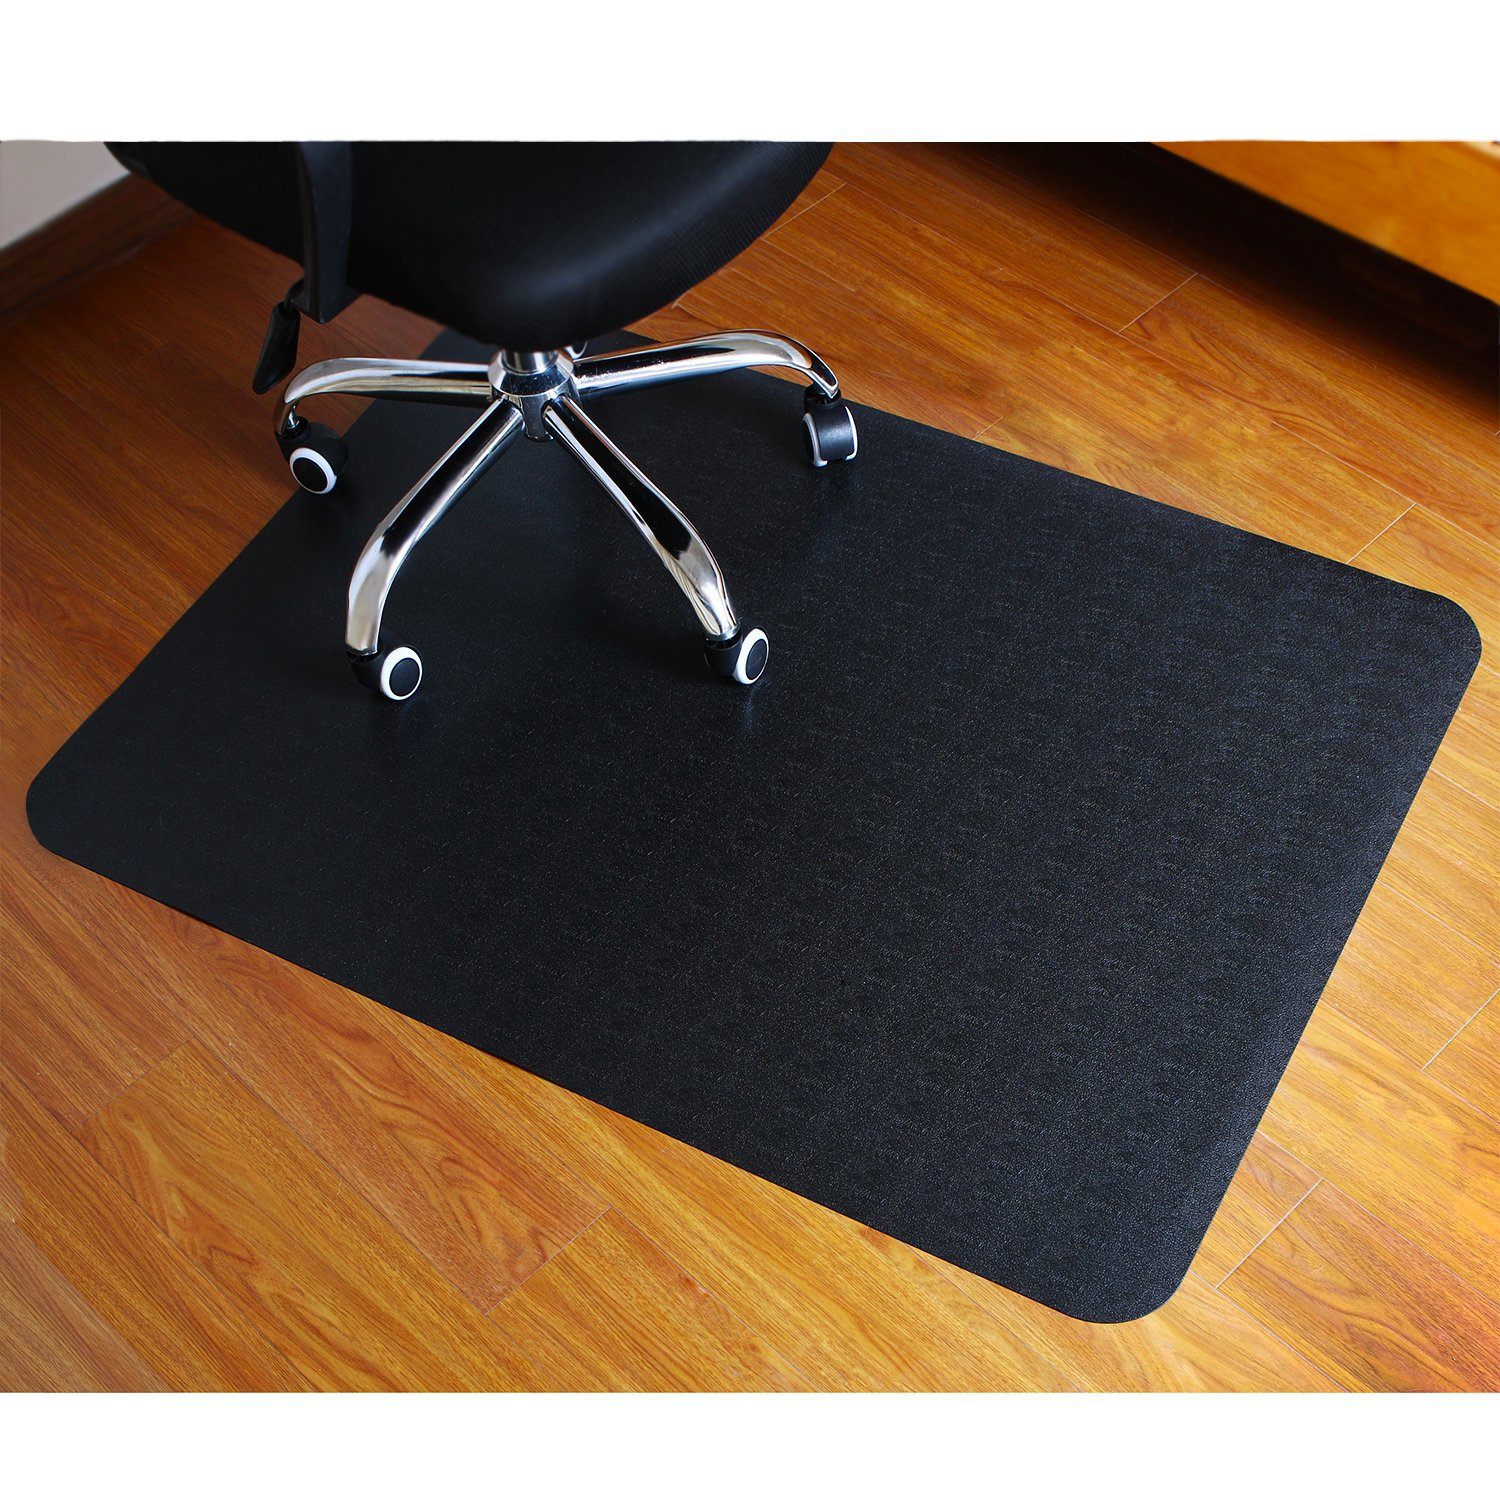 amazon com polytene office chair mat 47 x35 hard floor